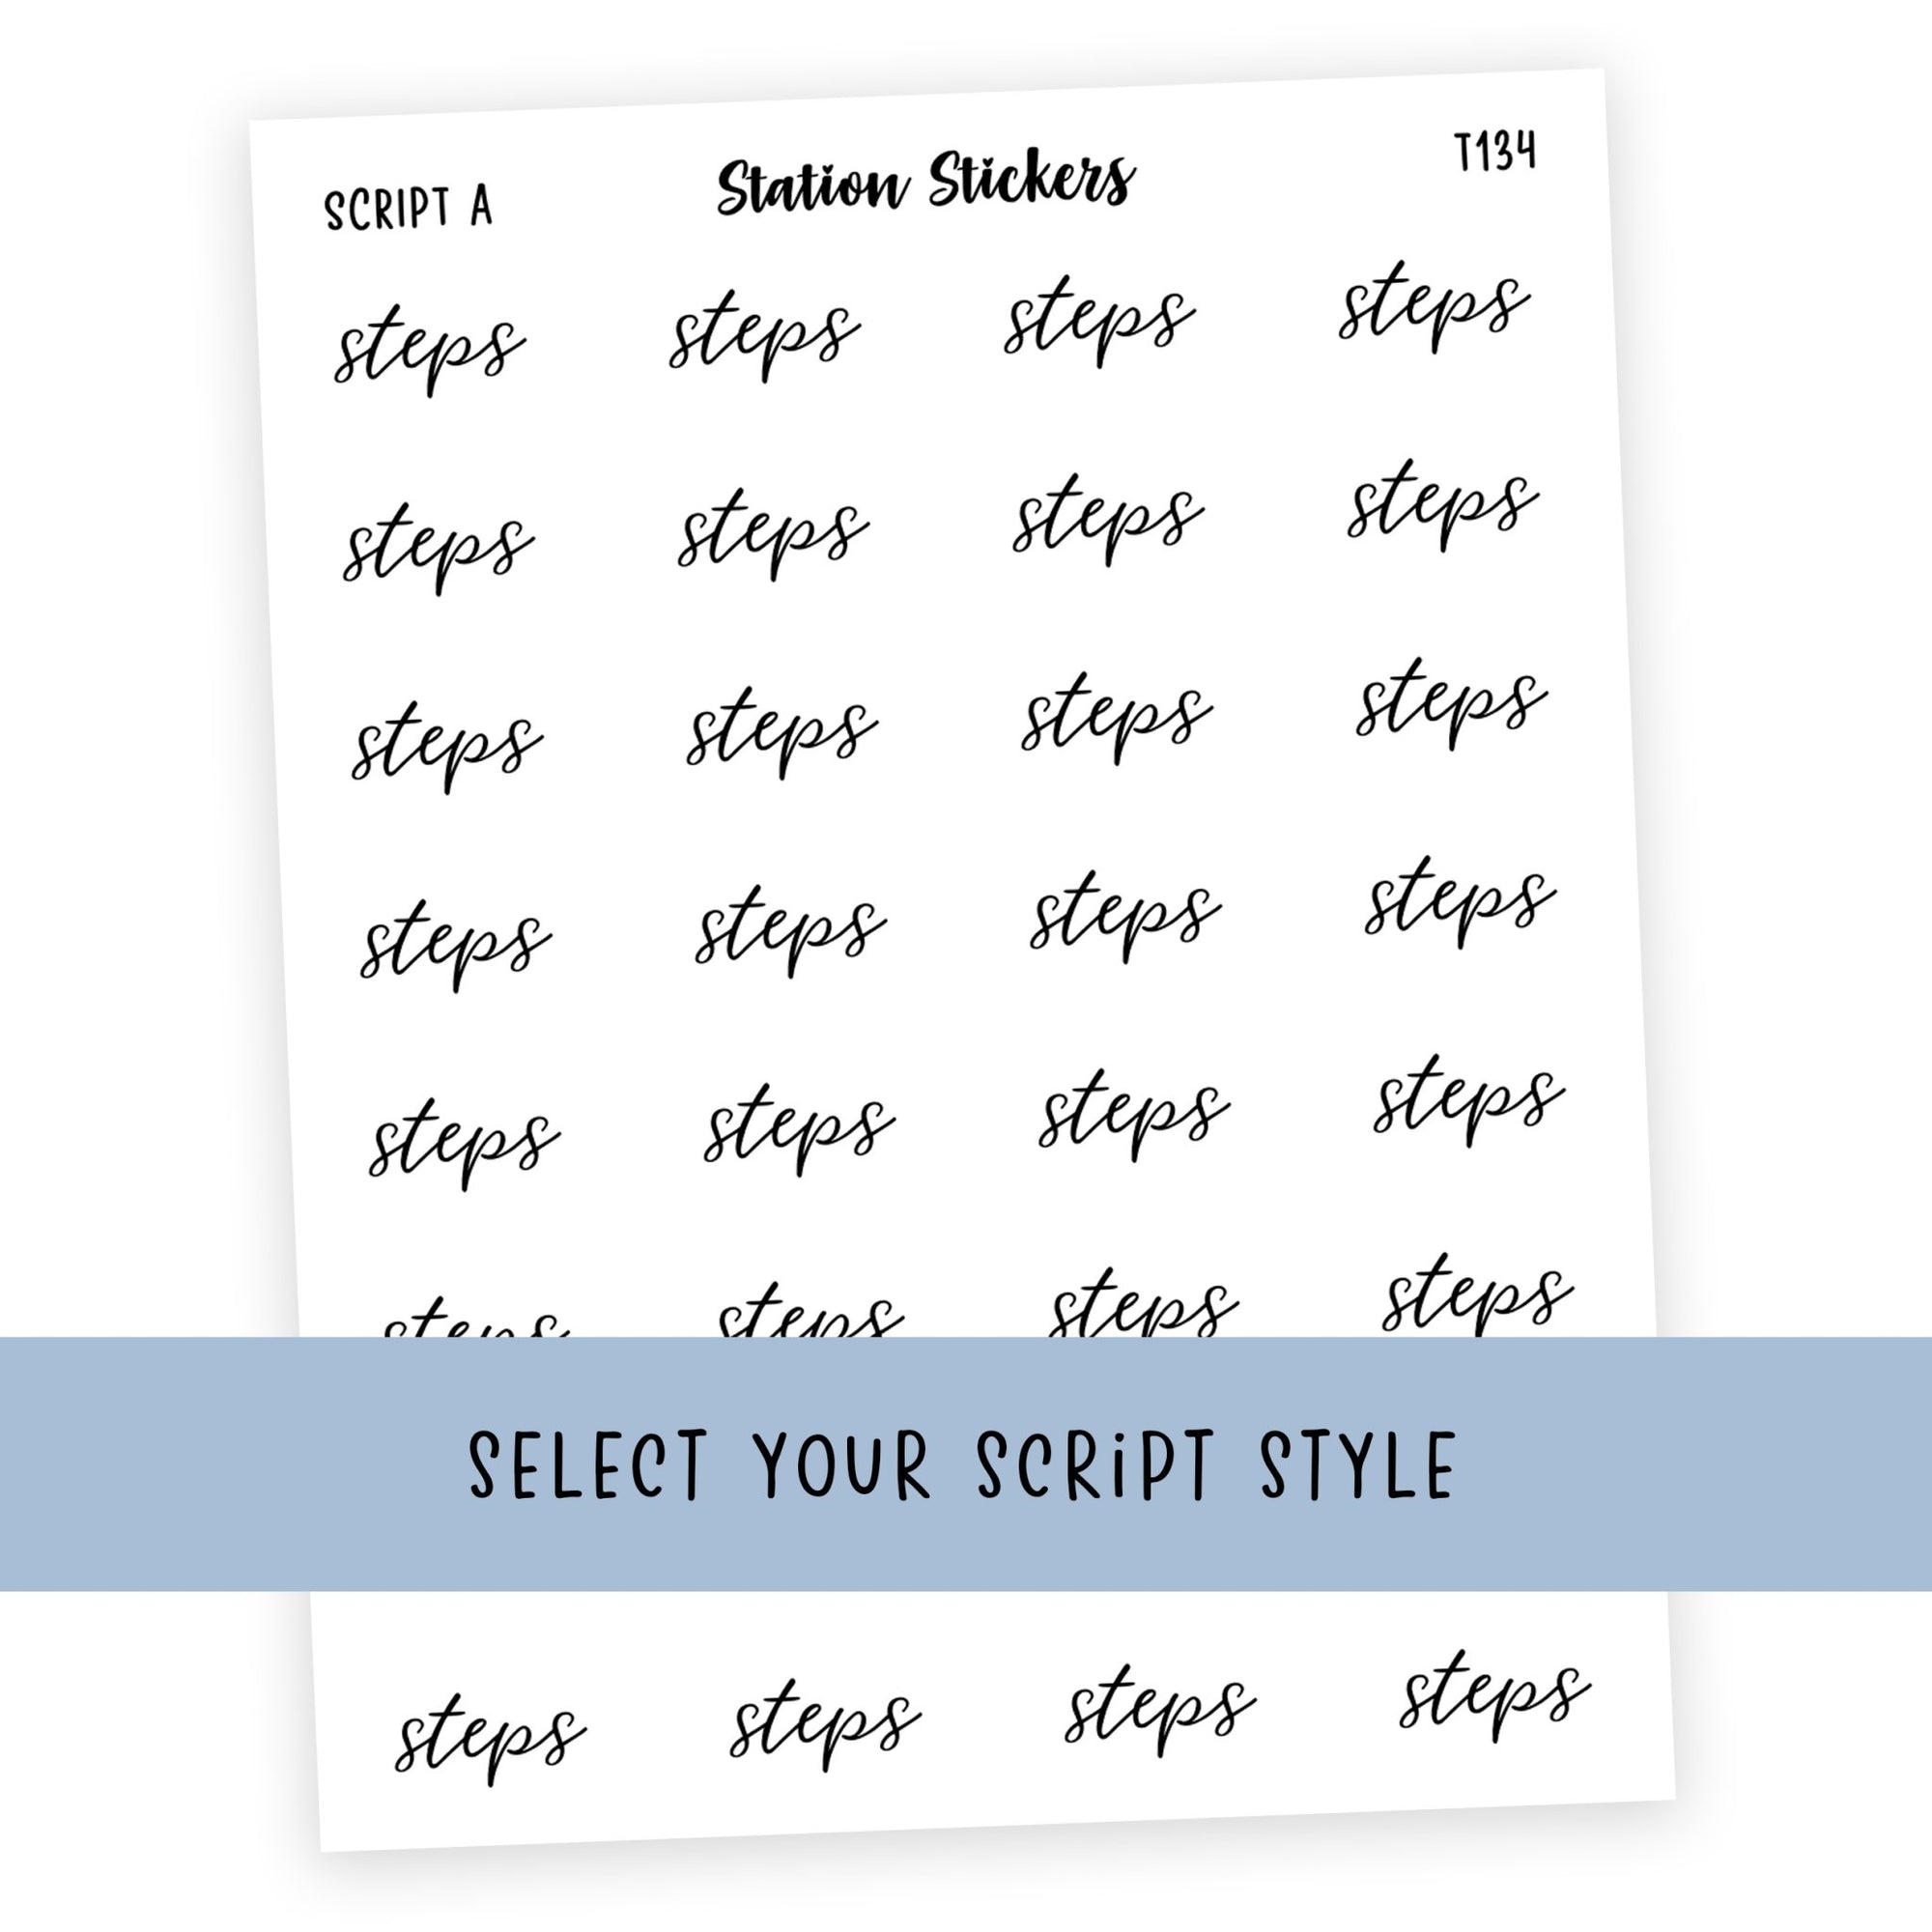 STEPS • SCRIPTS - Station Stickers